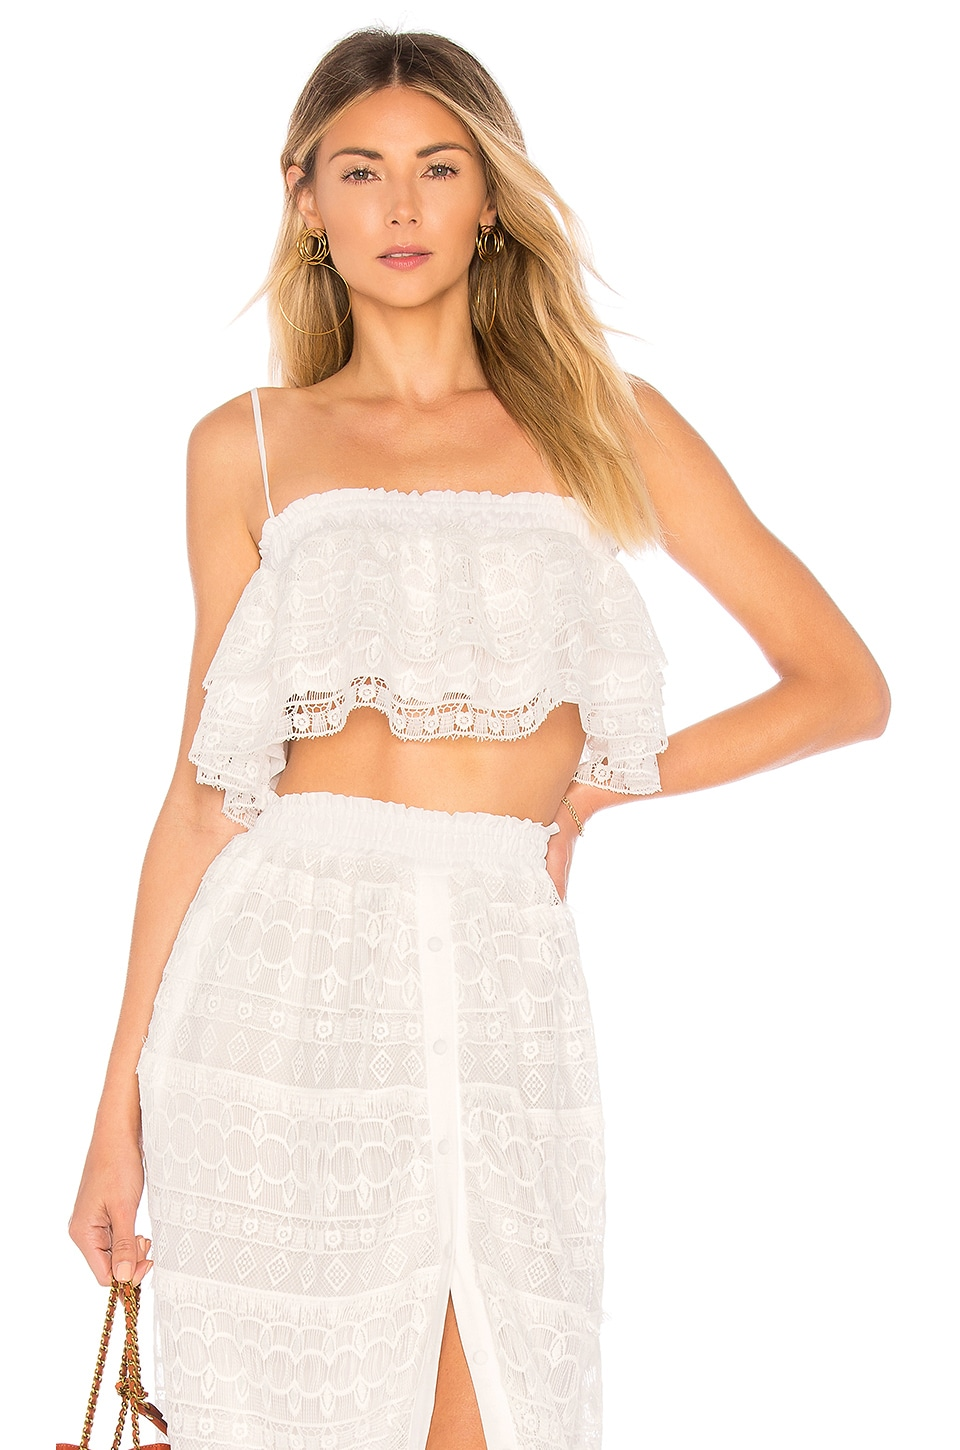 Tularosa Stella Top in White